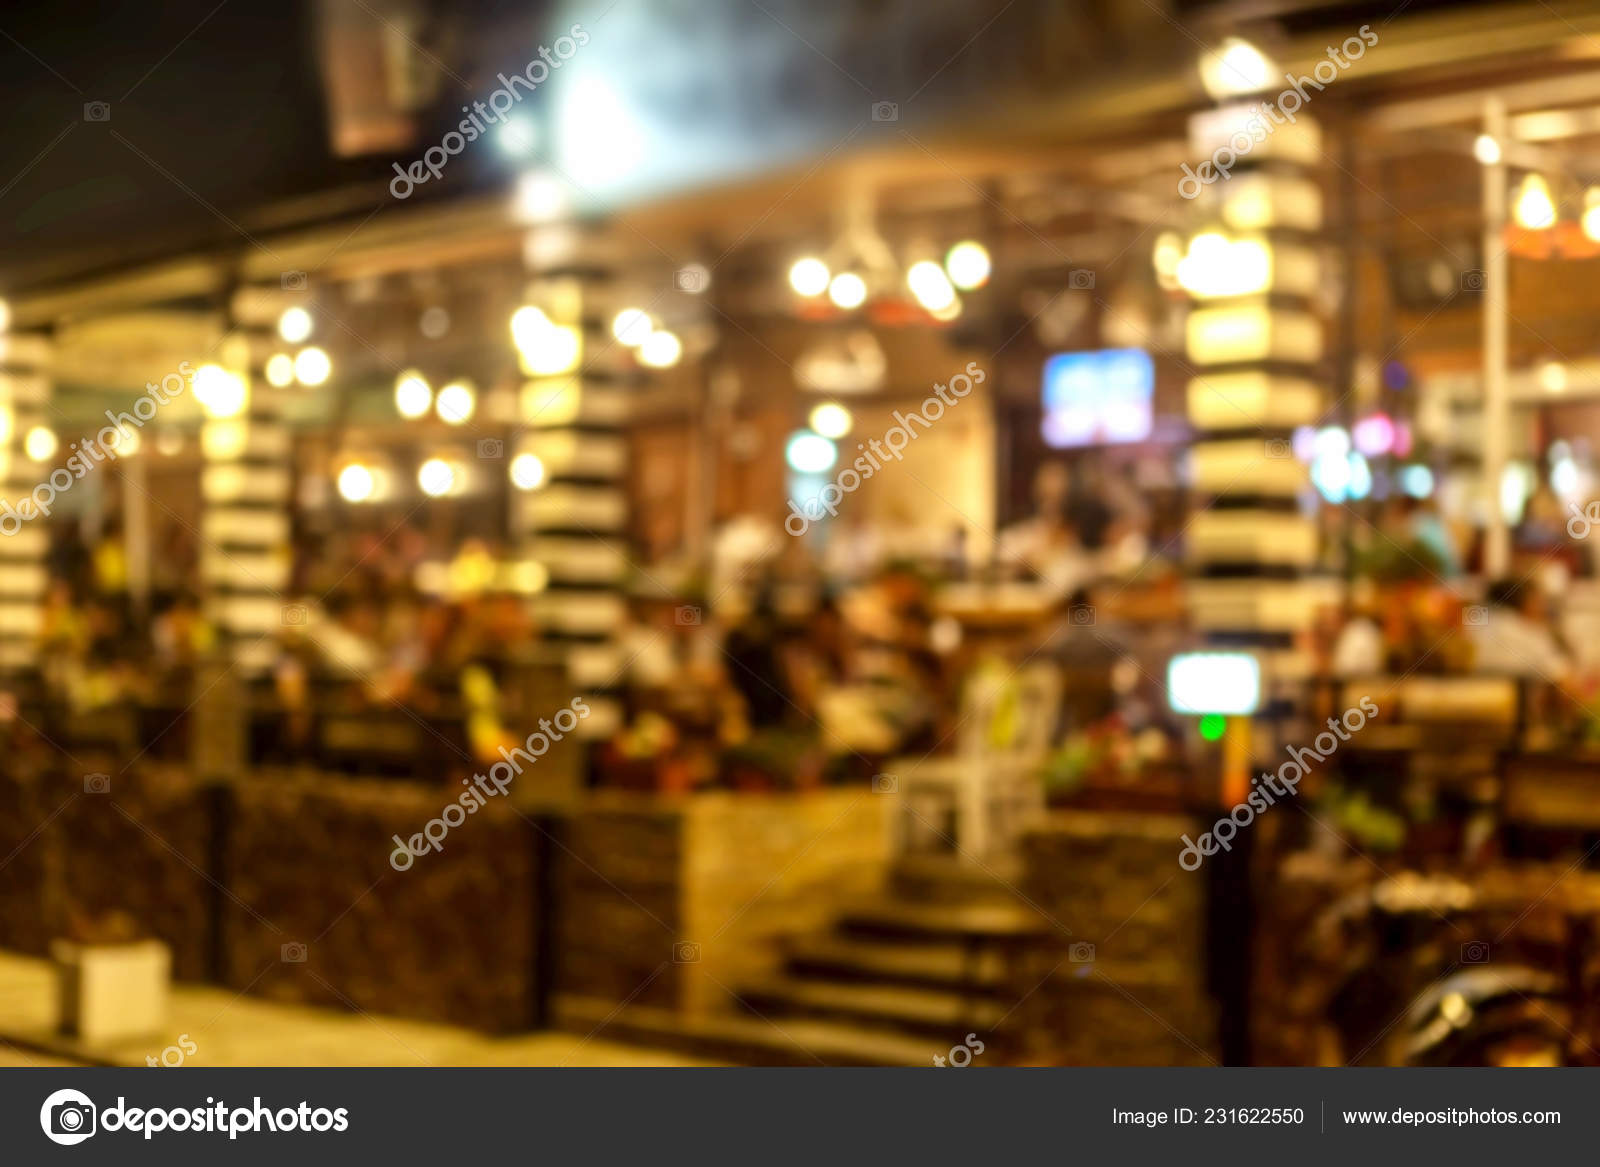 Interior Small Restaurant Blurred Background Blurred Bokeh Cafe Interior Warm Stock Photo C Alesik 231622550